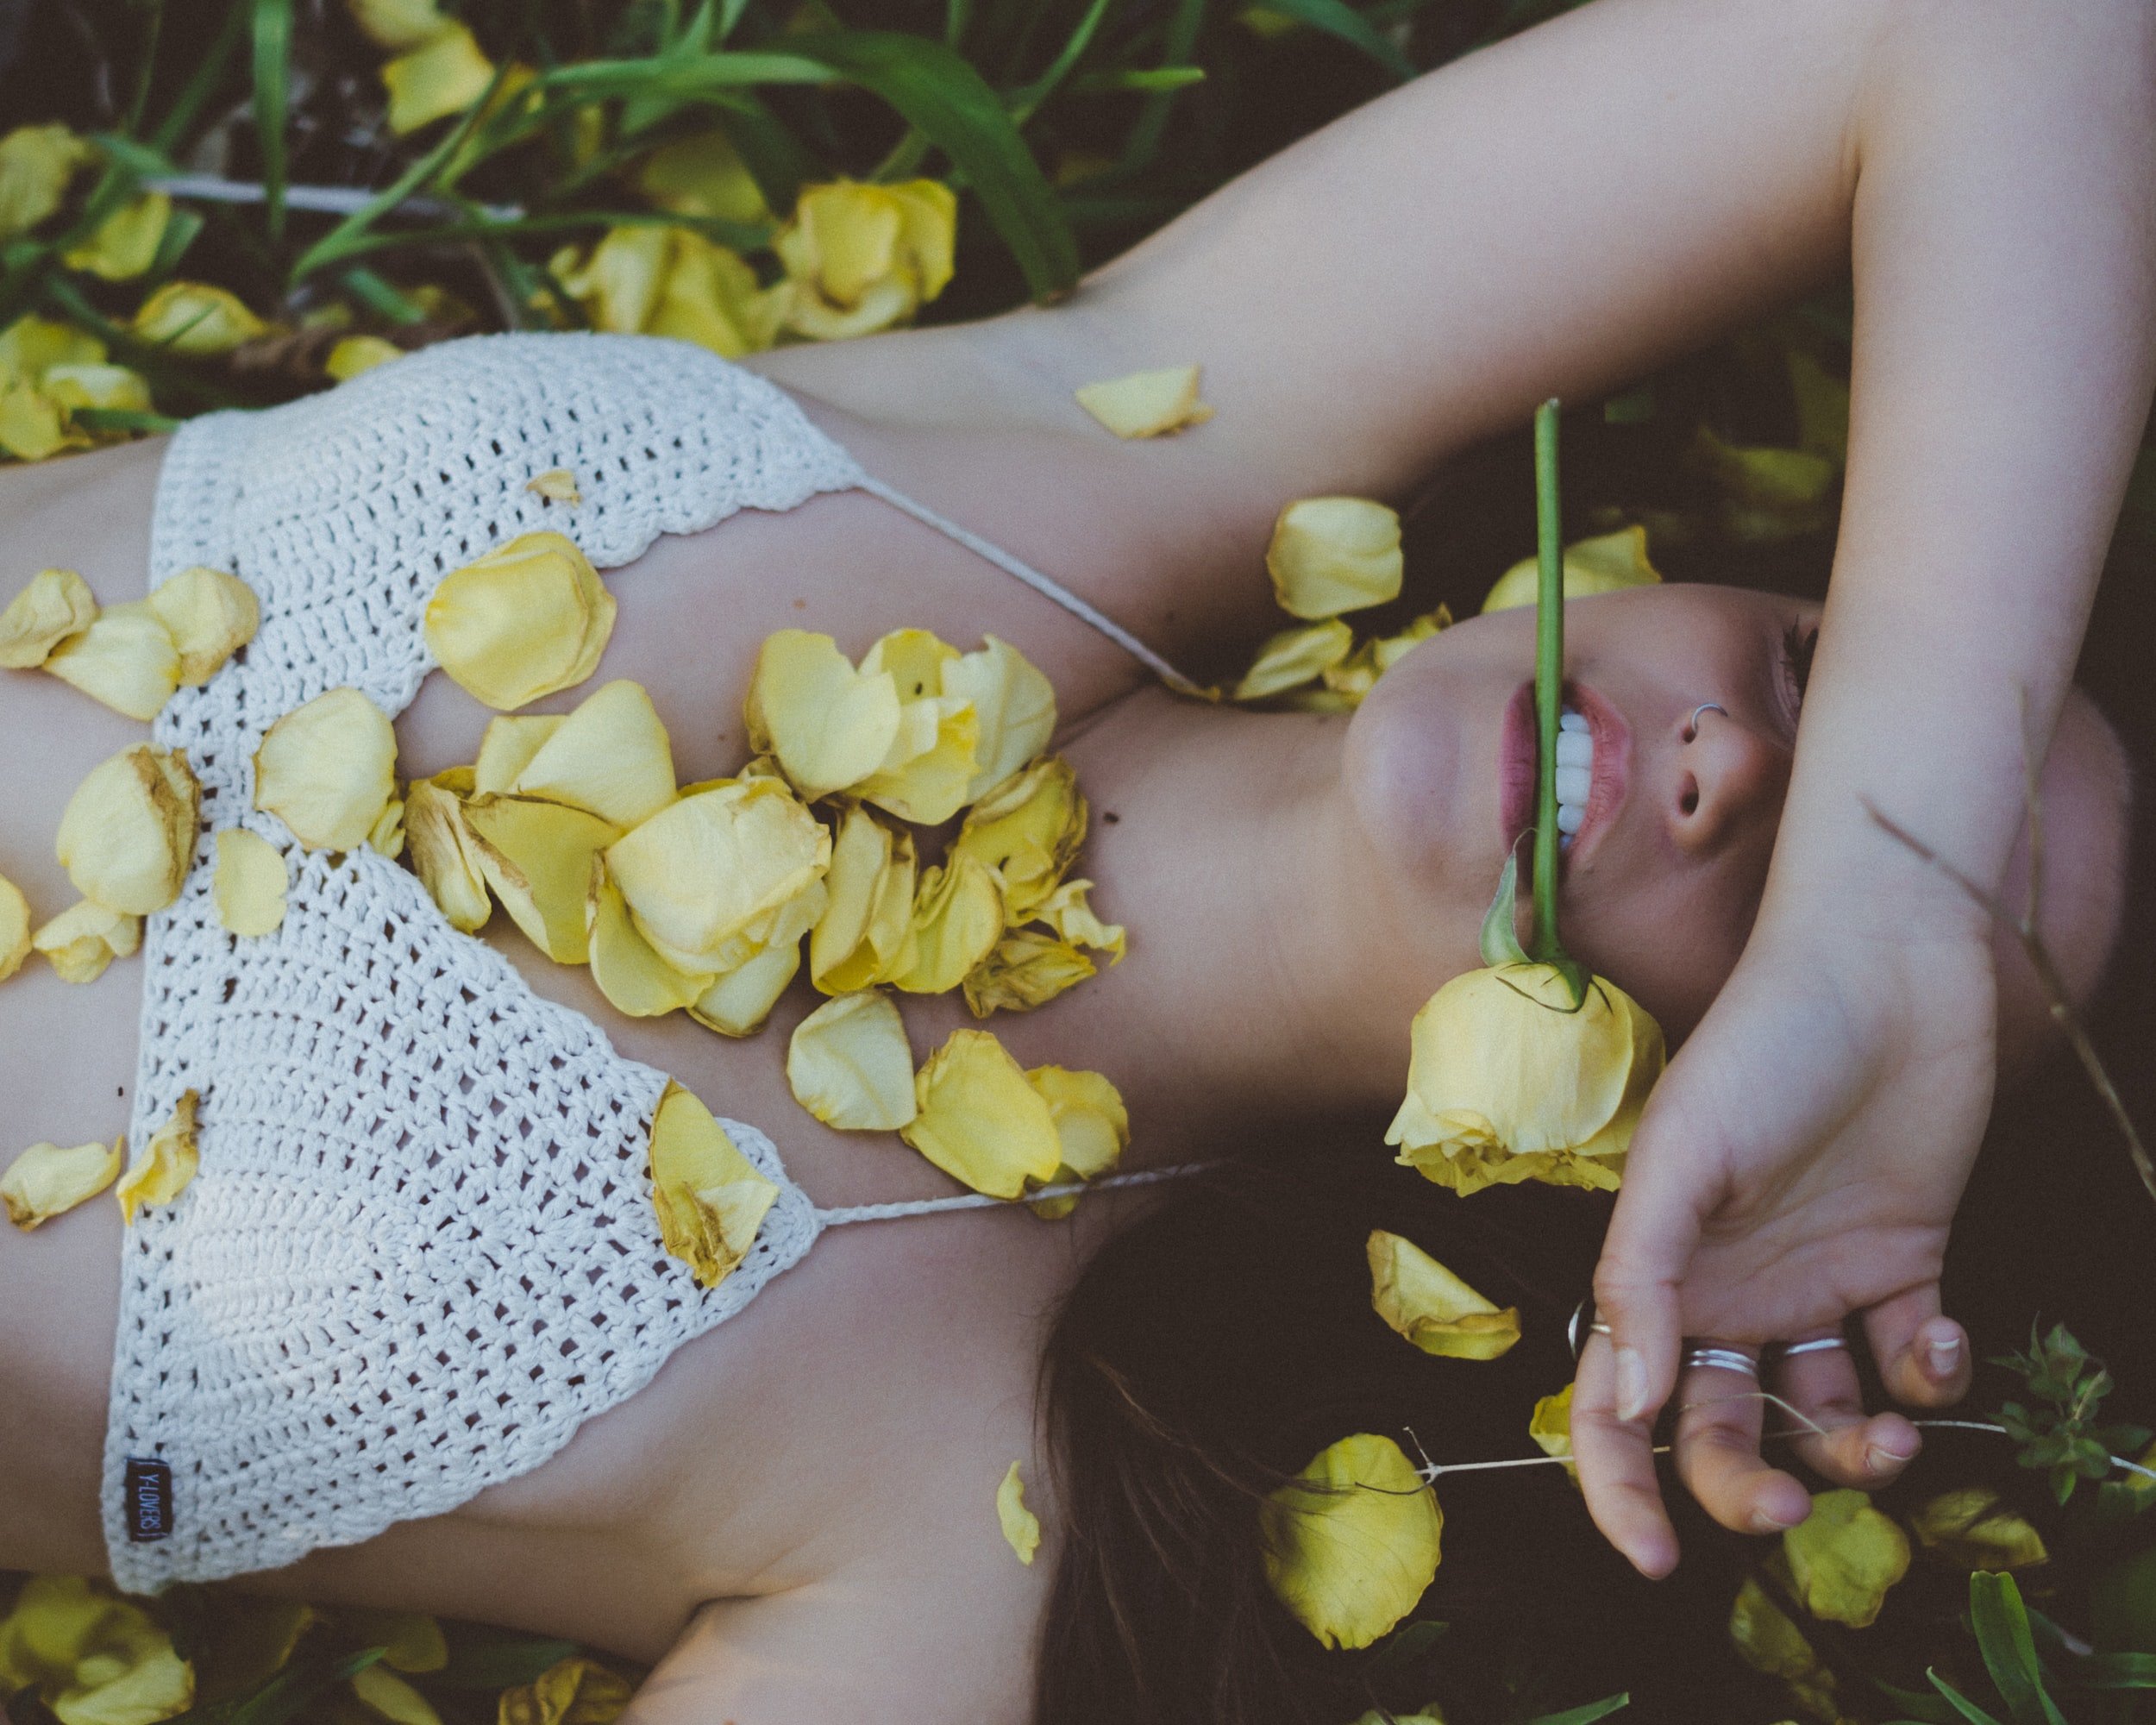 woman laying on plant with yellow flower on mouth